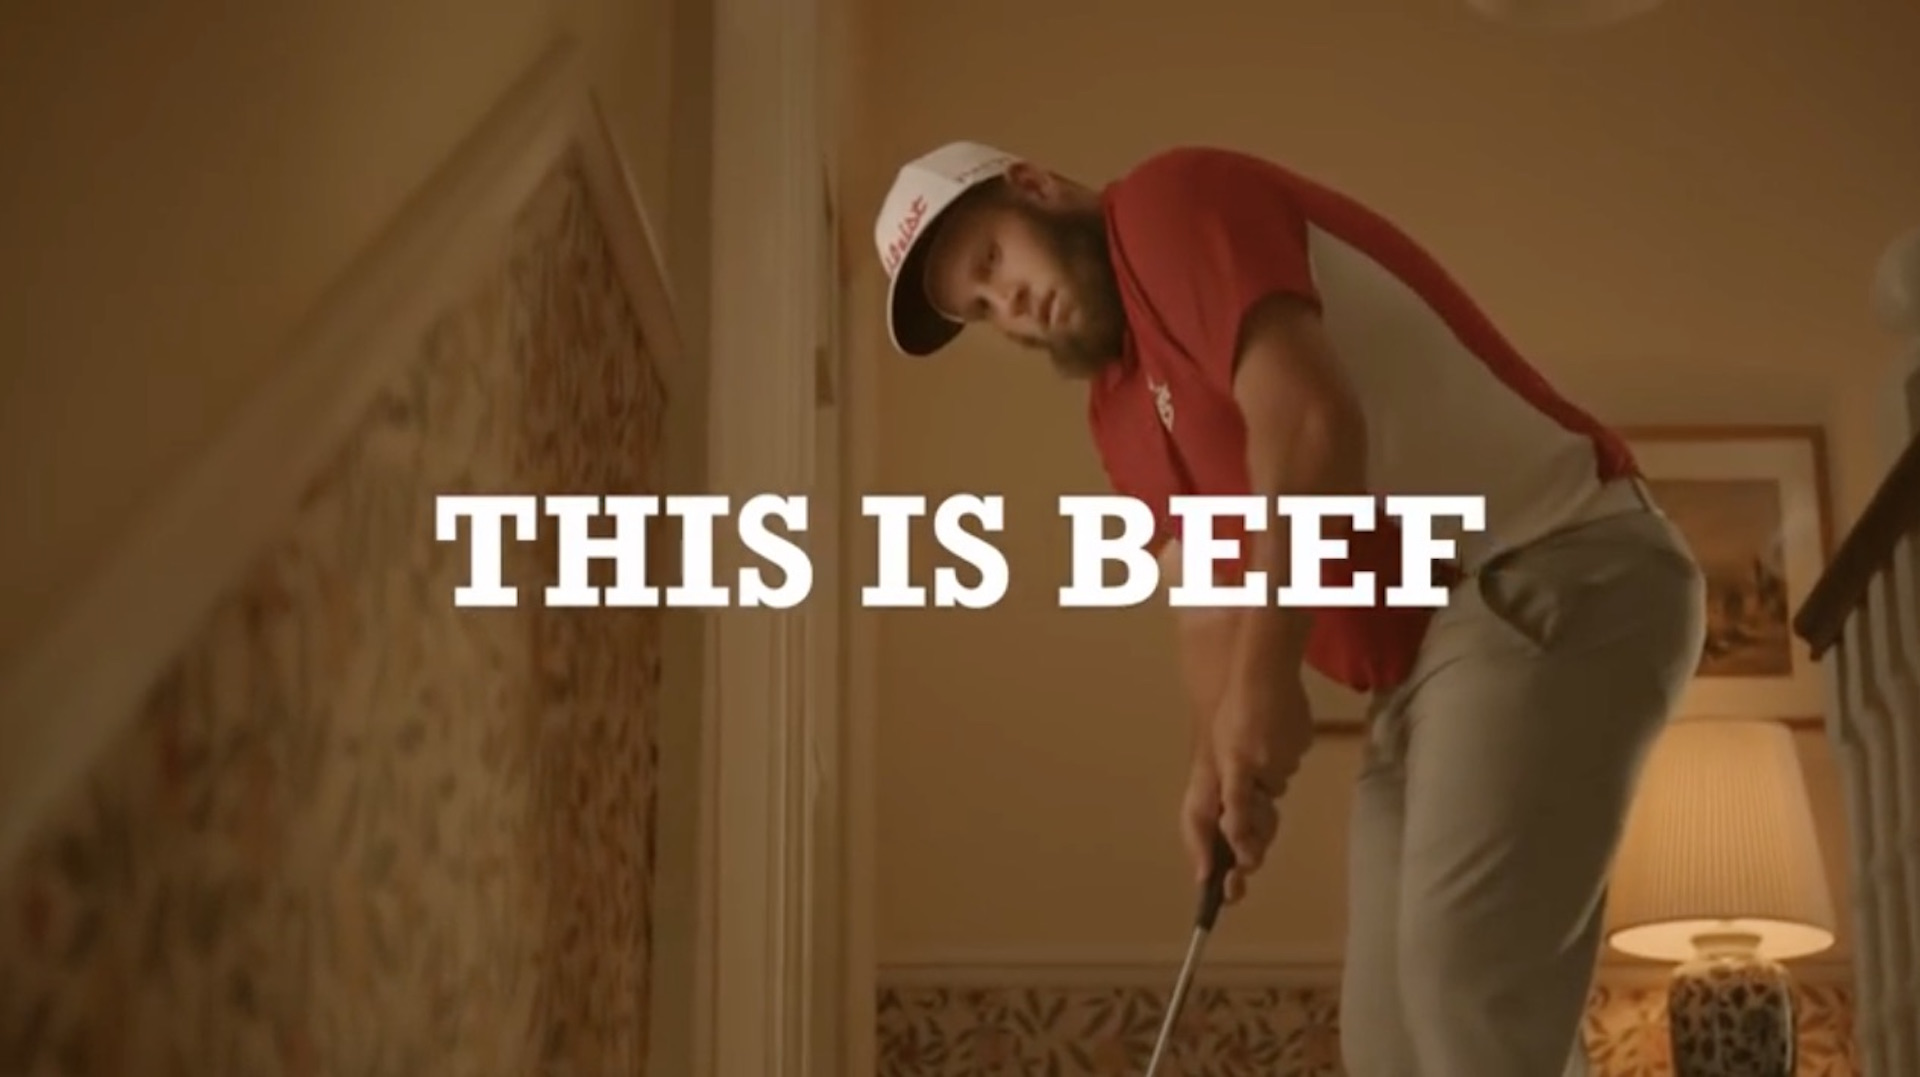 Beef's new Arby's adverts are out